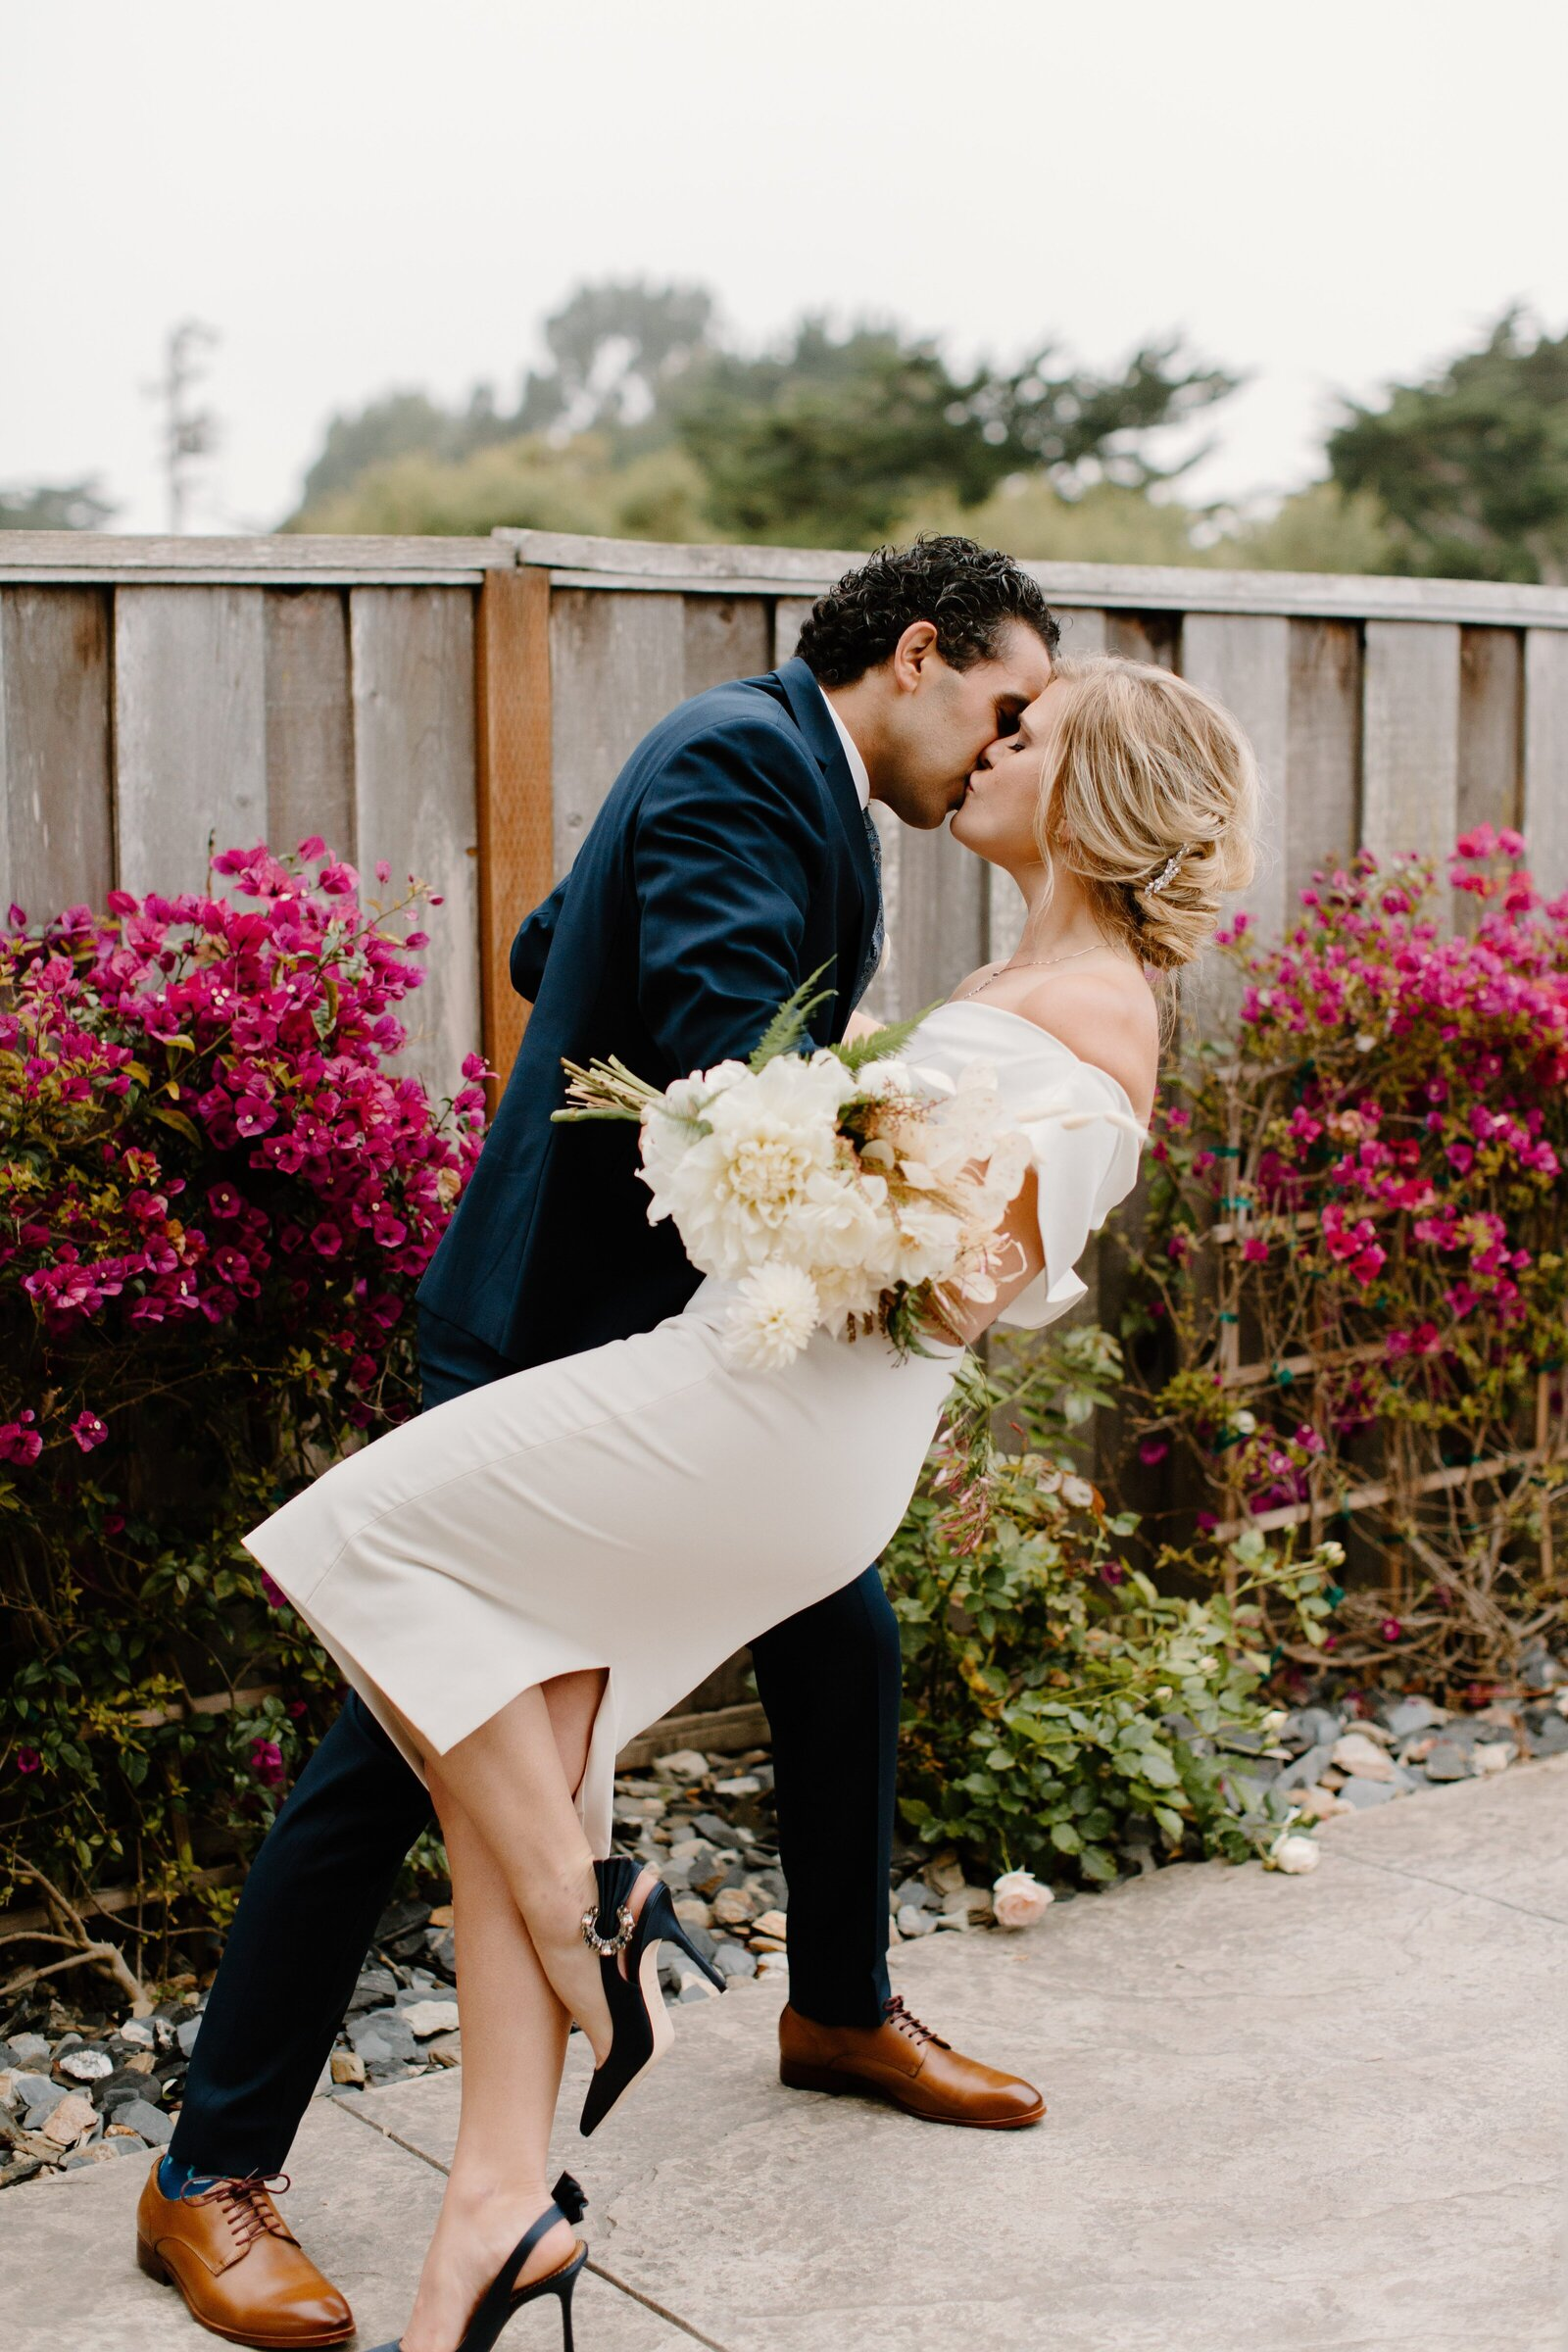 Caitlin-Arya_Intimate-Wedding-Aptos_Hannah-Berglund-Photography-402